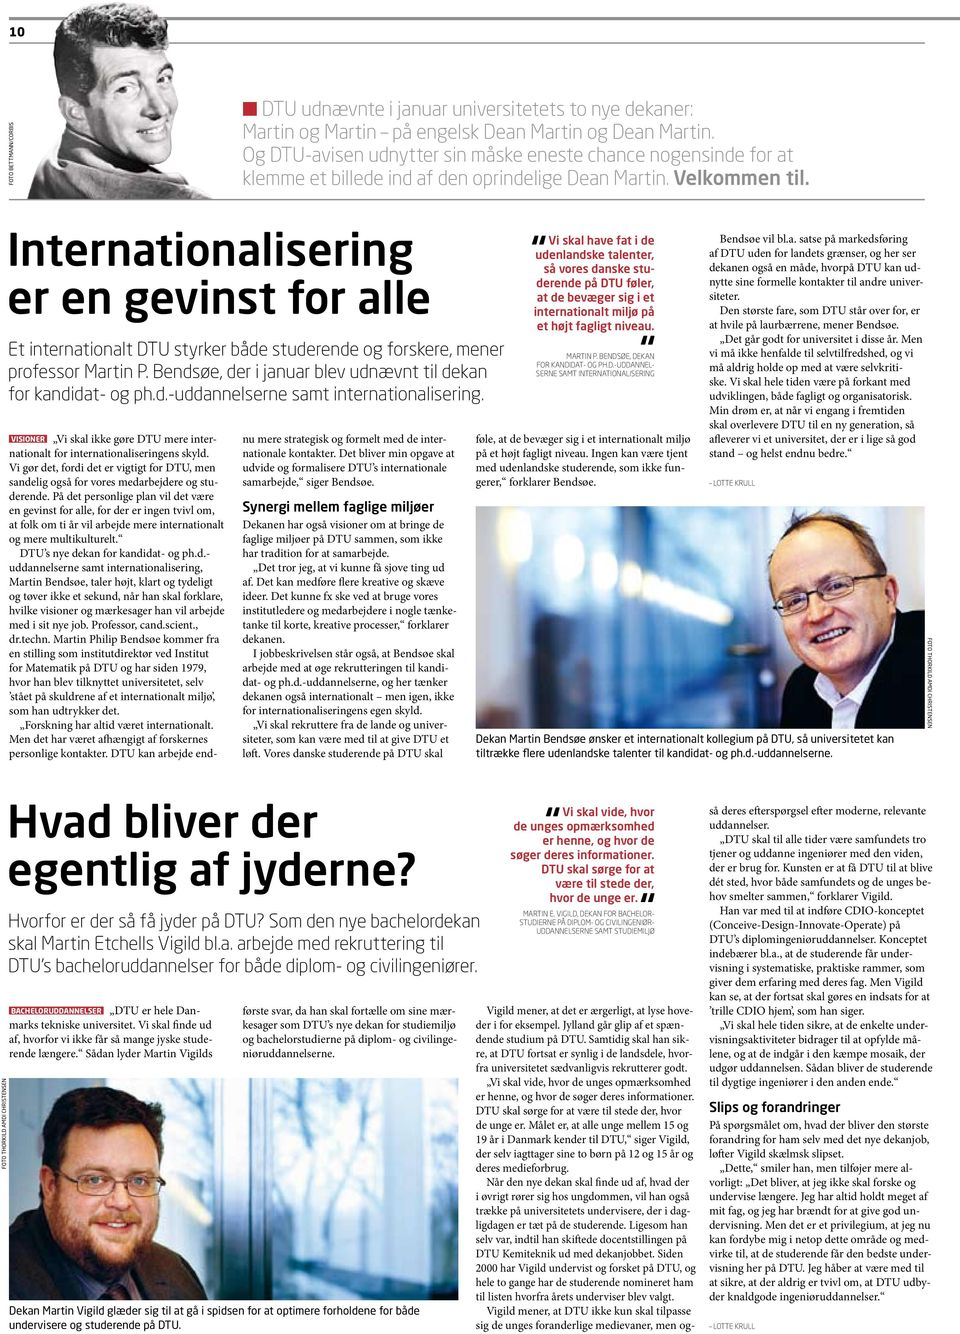 Internationalisering er en gevinst for alle Et internationalt DTU styrker både studerende og forskere, mener professor Martin P. Bendsøe, der i januar blev udnævnt til dekan for kandidat- og ph.d.-uddannelserne samt internationalisering.